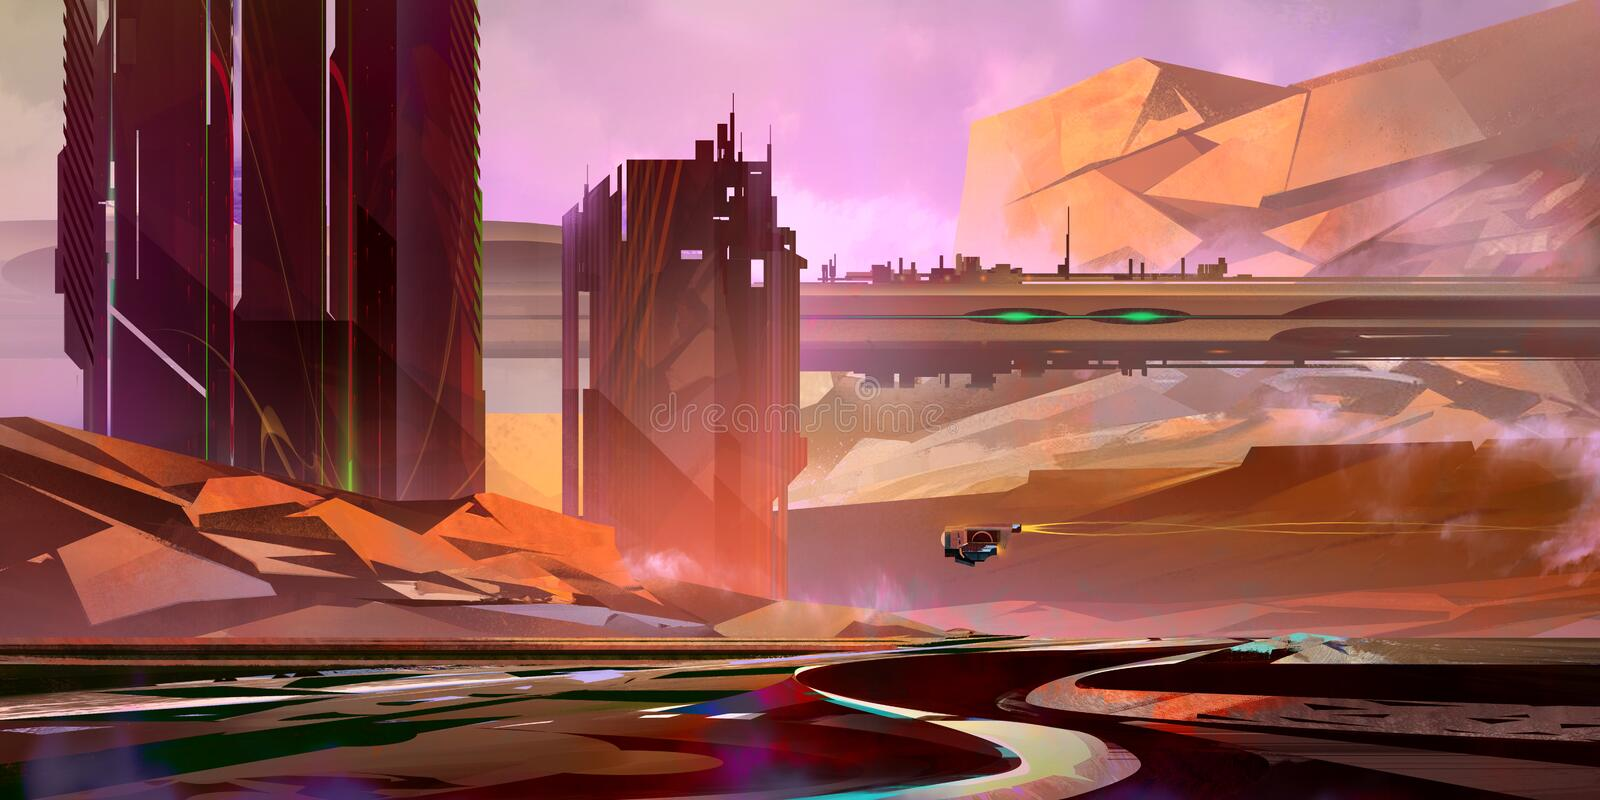 Painted bright fantastic landscape of the future in cyberpunk style royalty free stock photo